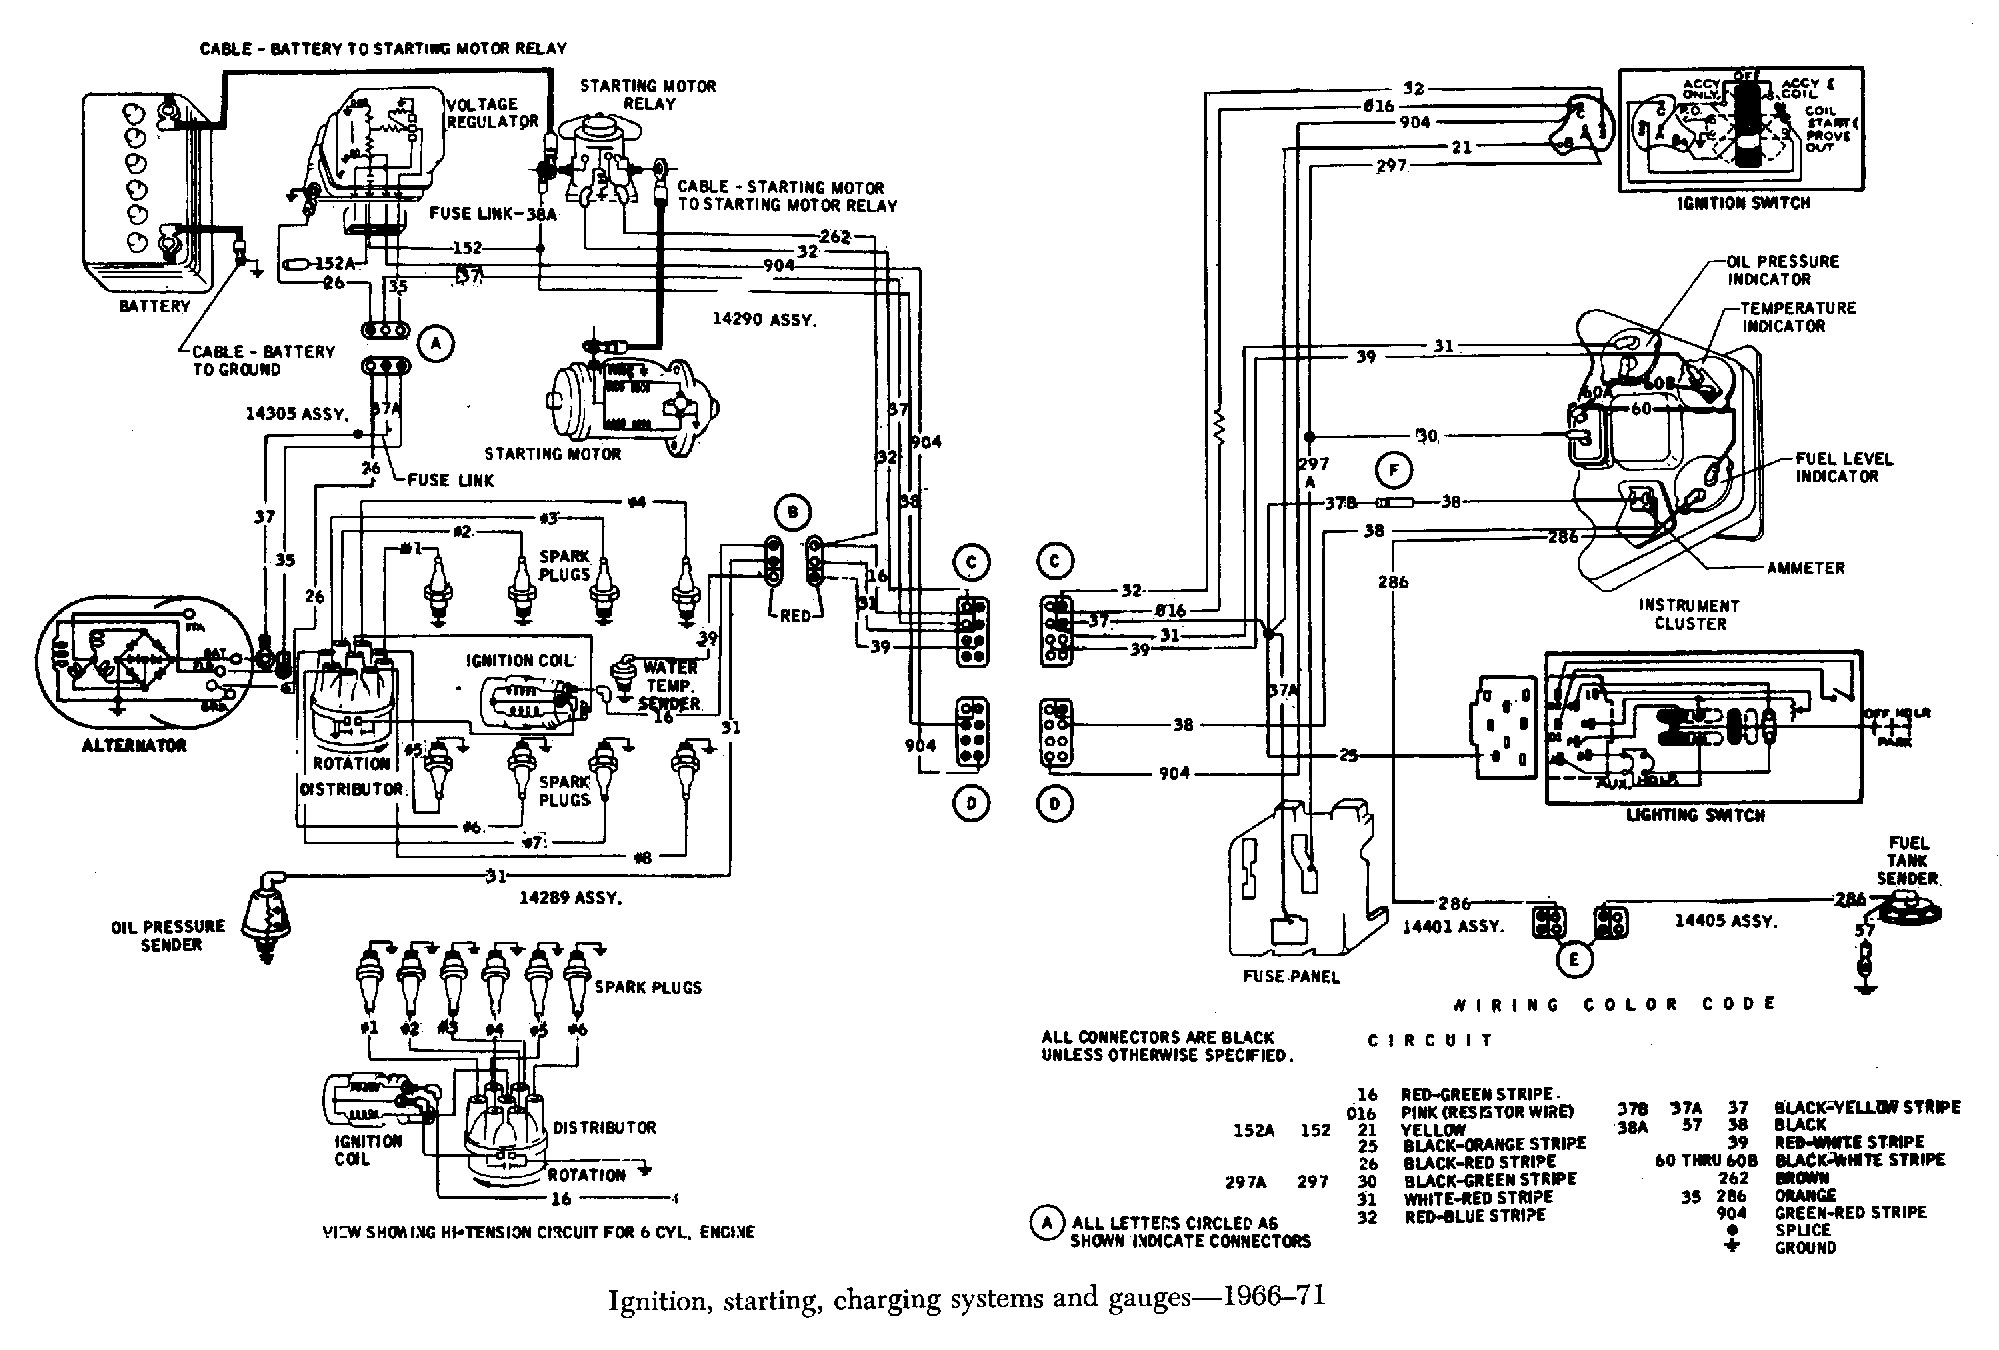 Spark Plug Wiring Diagram Chevy 350 | Switch Wiring Diagram Free - Spark Plug Wiring Diagram Chevy 350